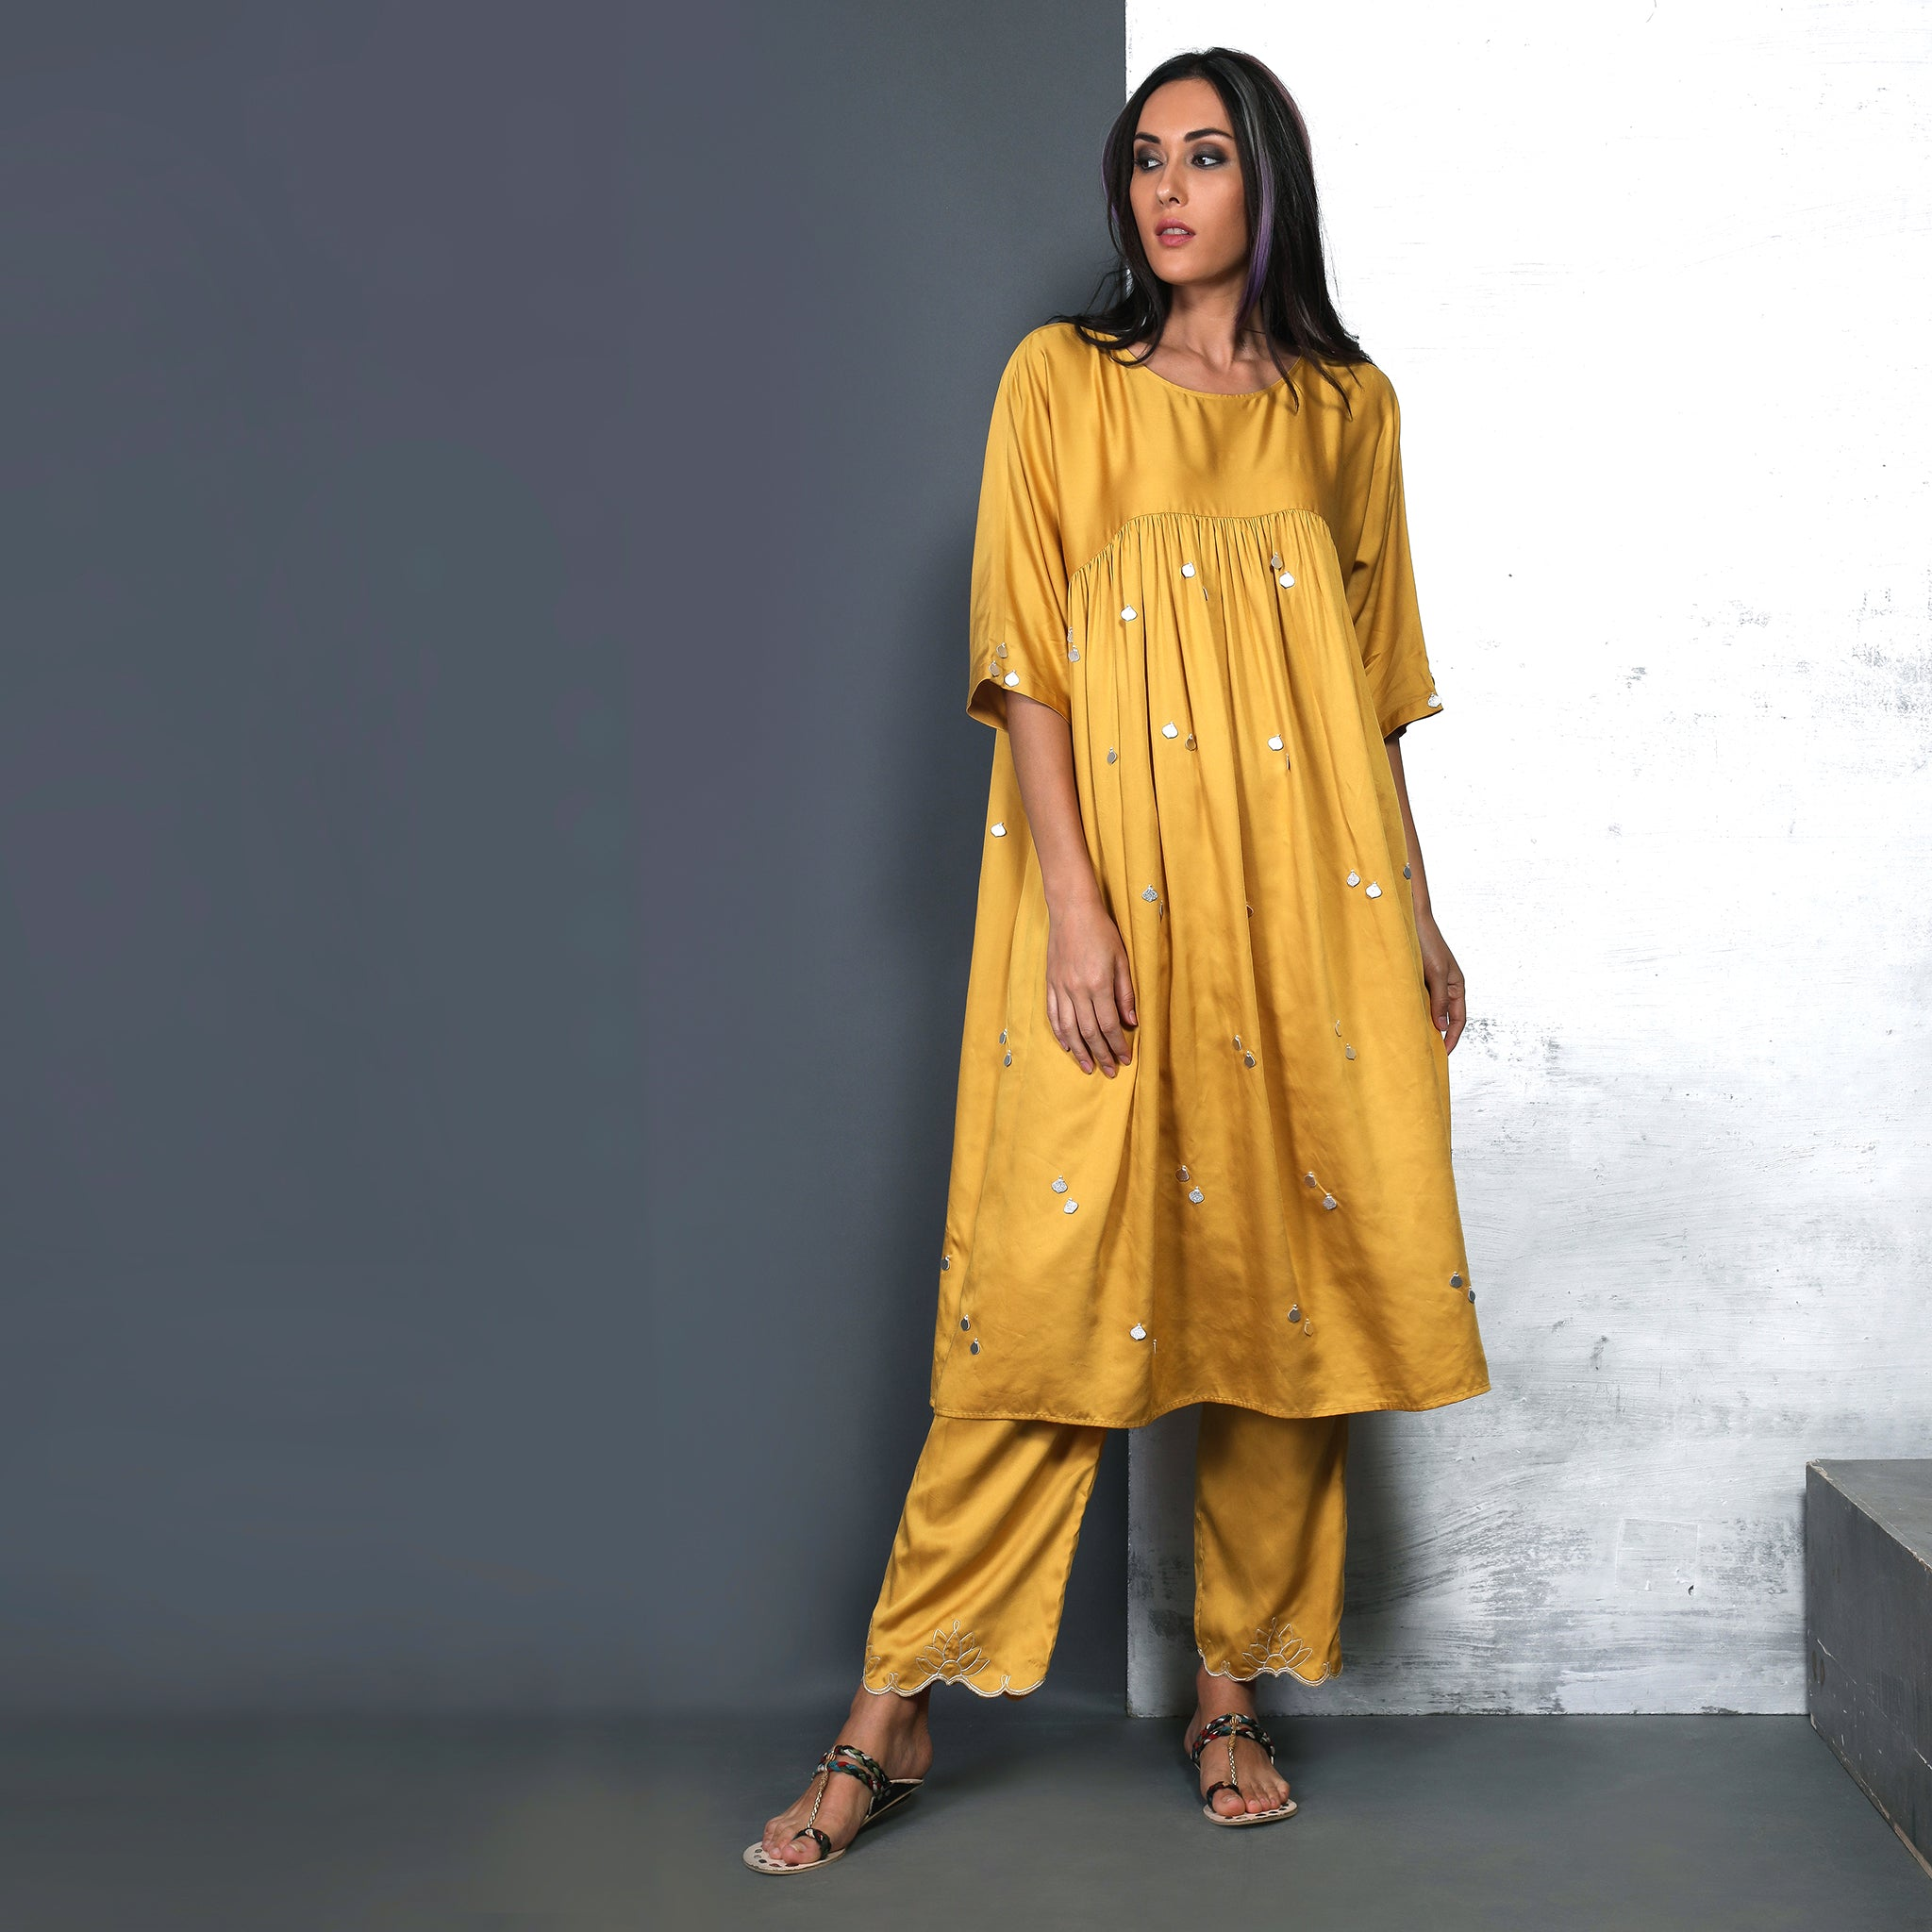 Maria Tunic Set - Canary yellow